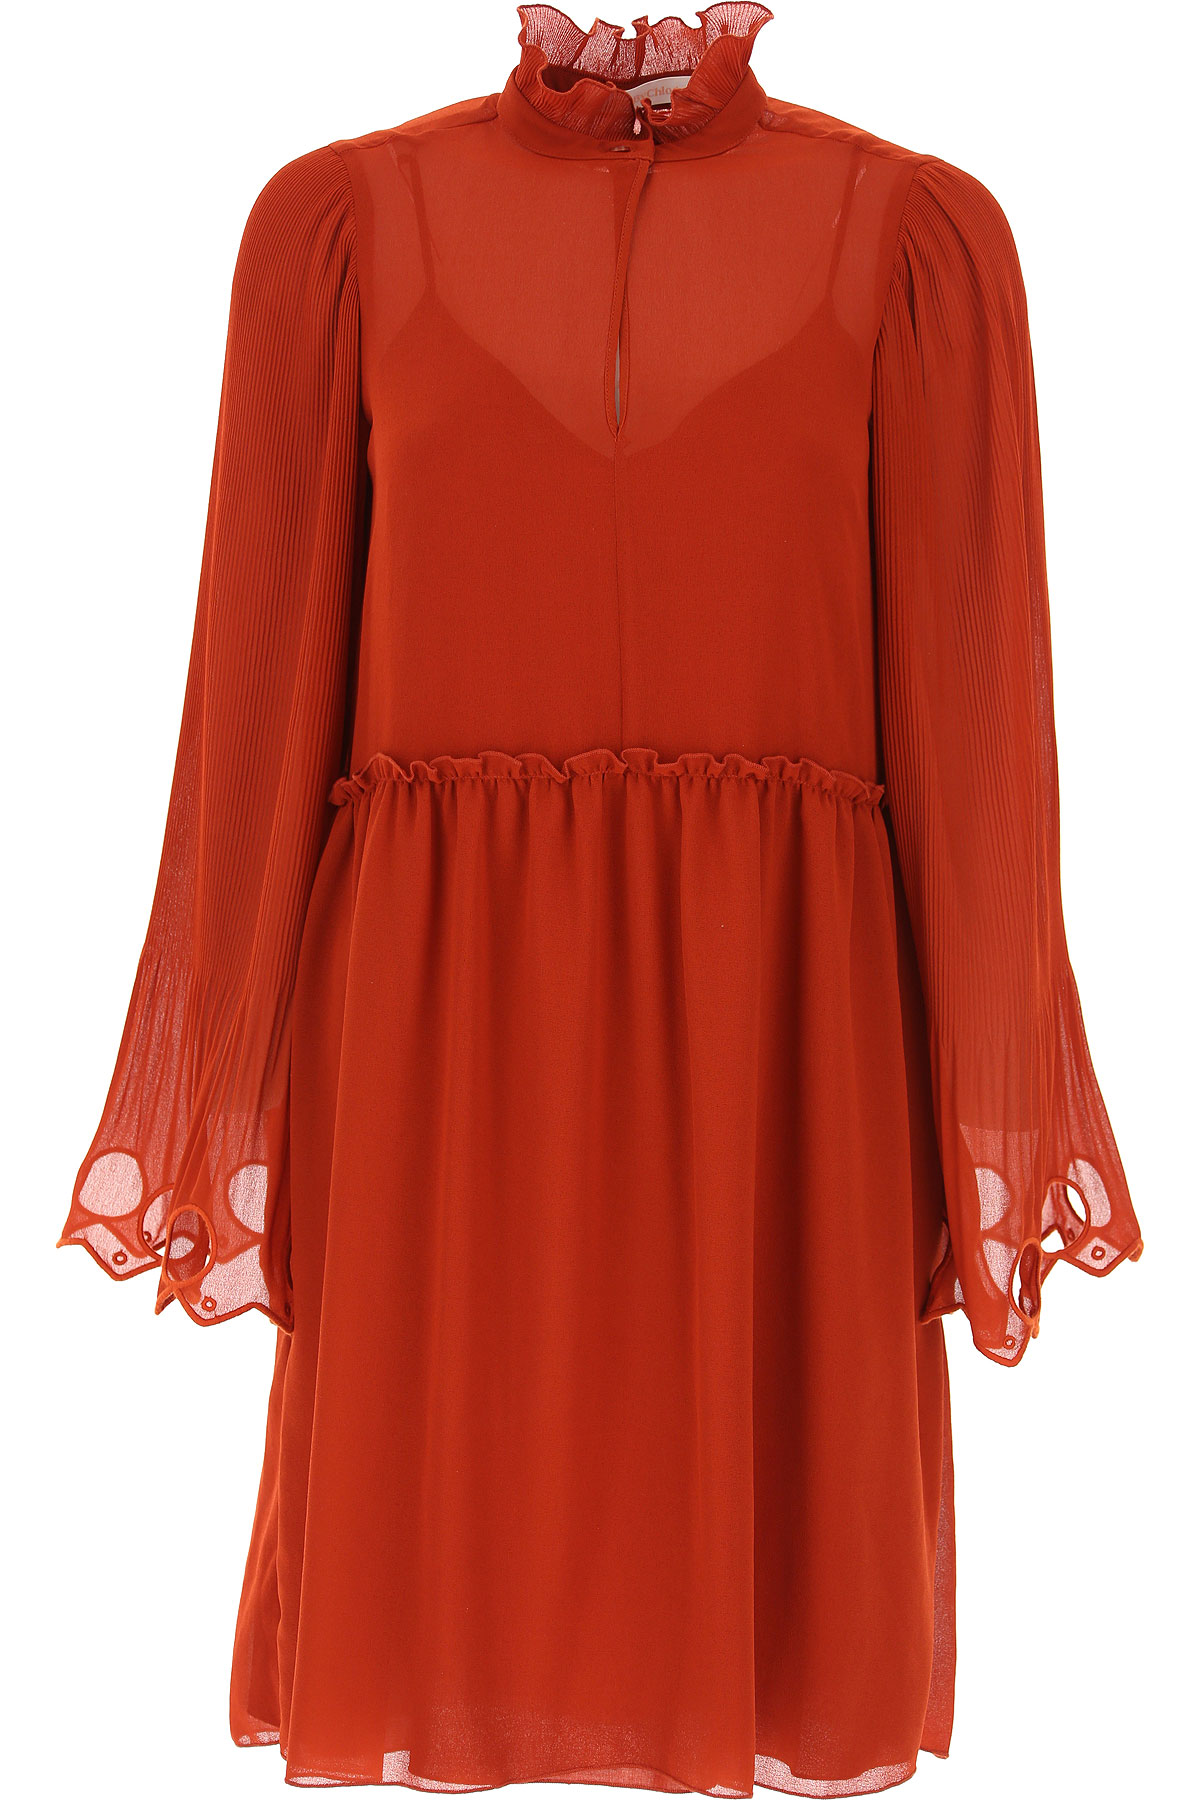 See By Chloe Dress for Women, Evening Cocktail Party On Sale, Red, Viscose, 2019, 4 6 8